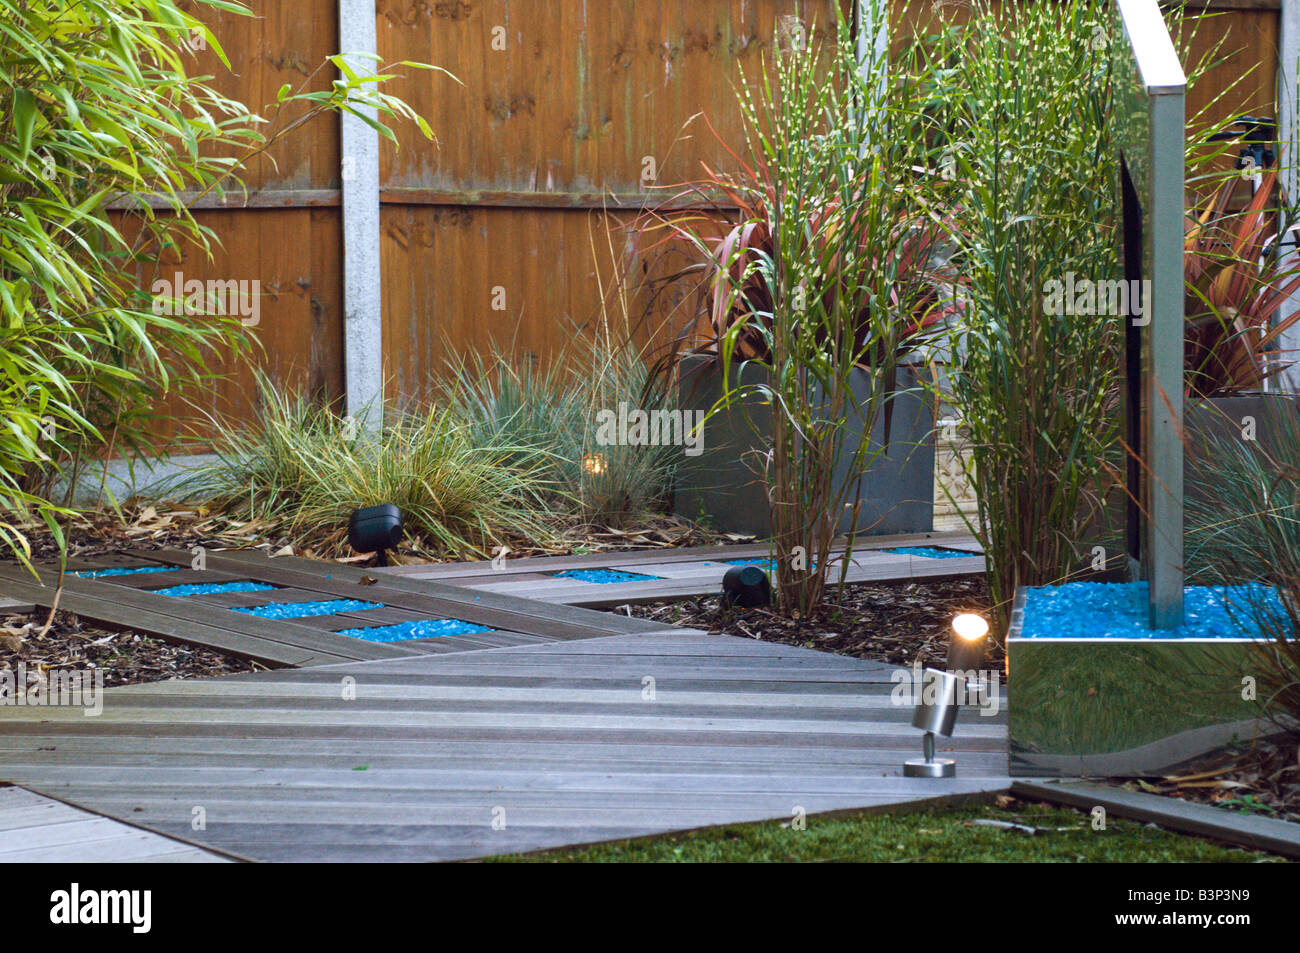 Modern Water Features Modern Landscaped Garden With Water Feature And Astro Turf Lawn